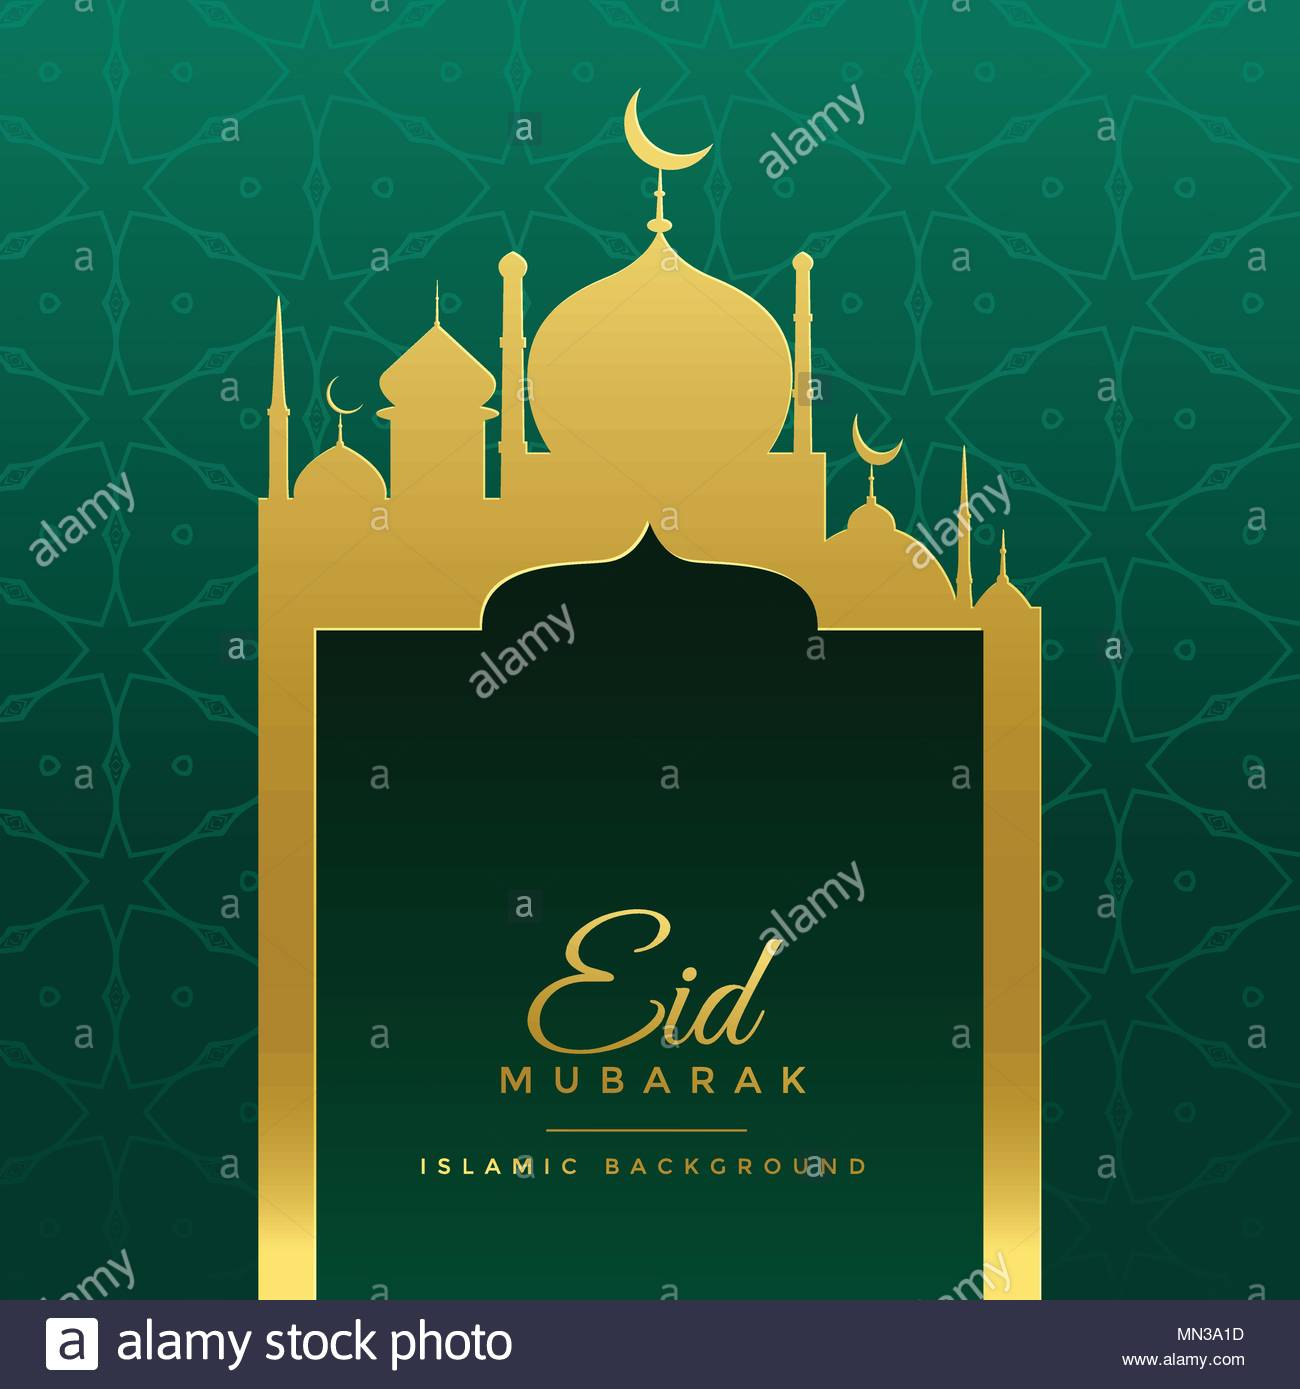 Eid mubarak wishes greeting with golden mosque stock vector art eid mubarak wishes greeting with golden mosque m4hsunfo